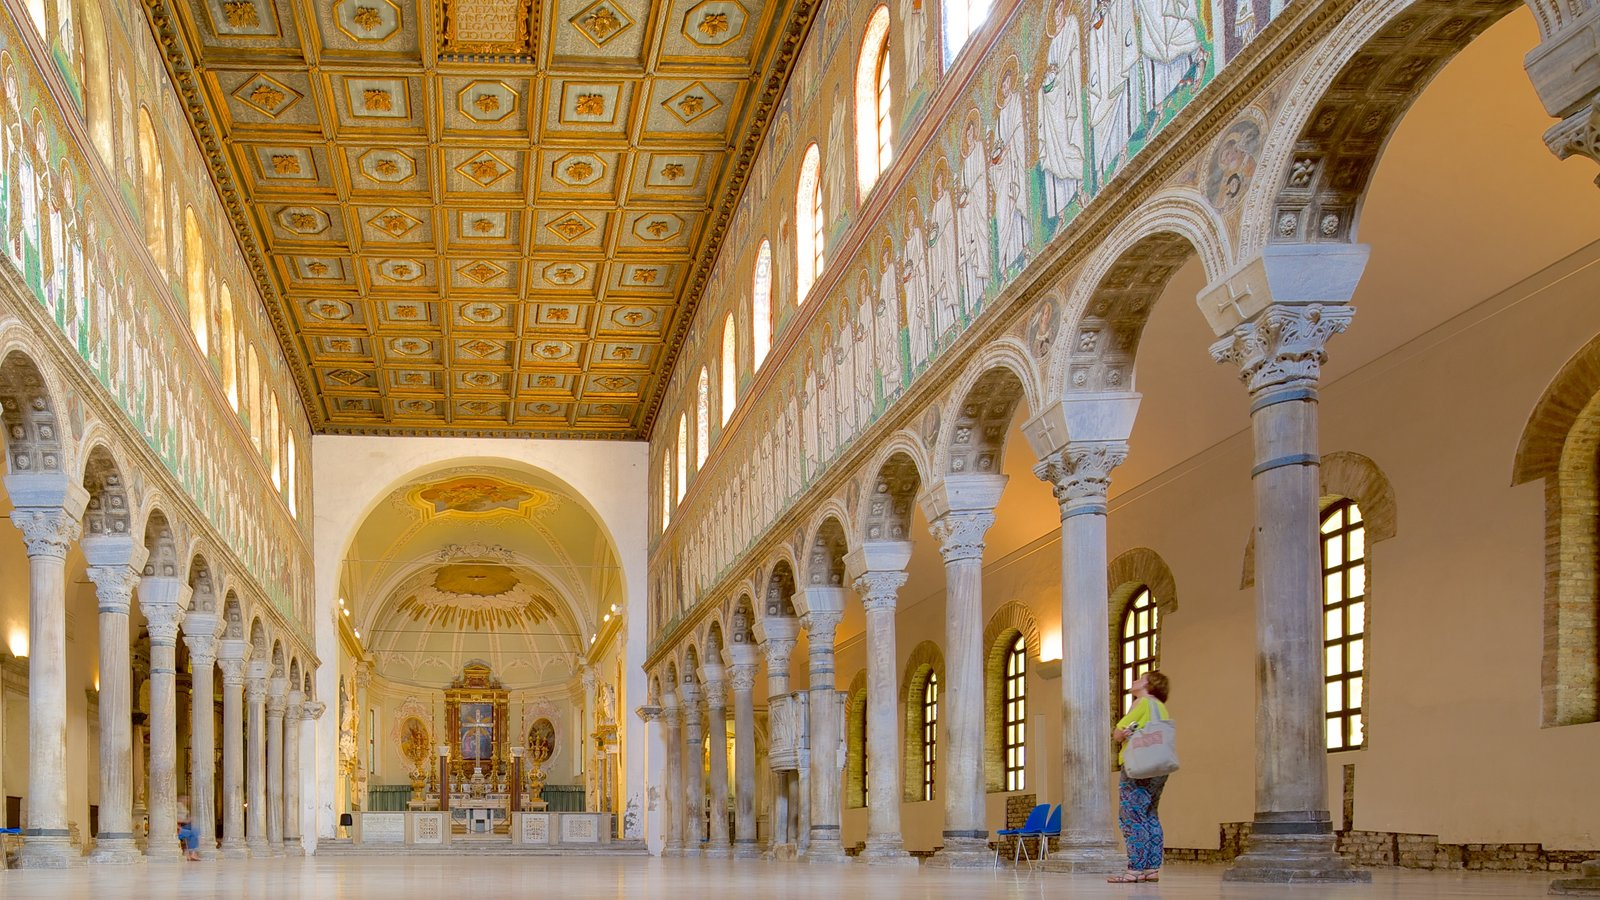 Basilica of Sant\' Apollinare Nuovo featuring heritage architecture, a church or cathedral and interior views